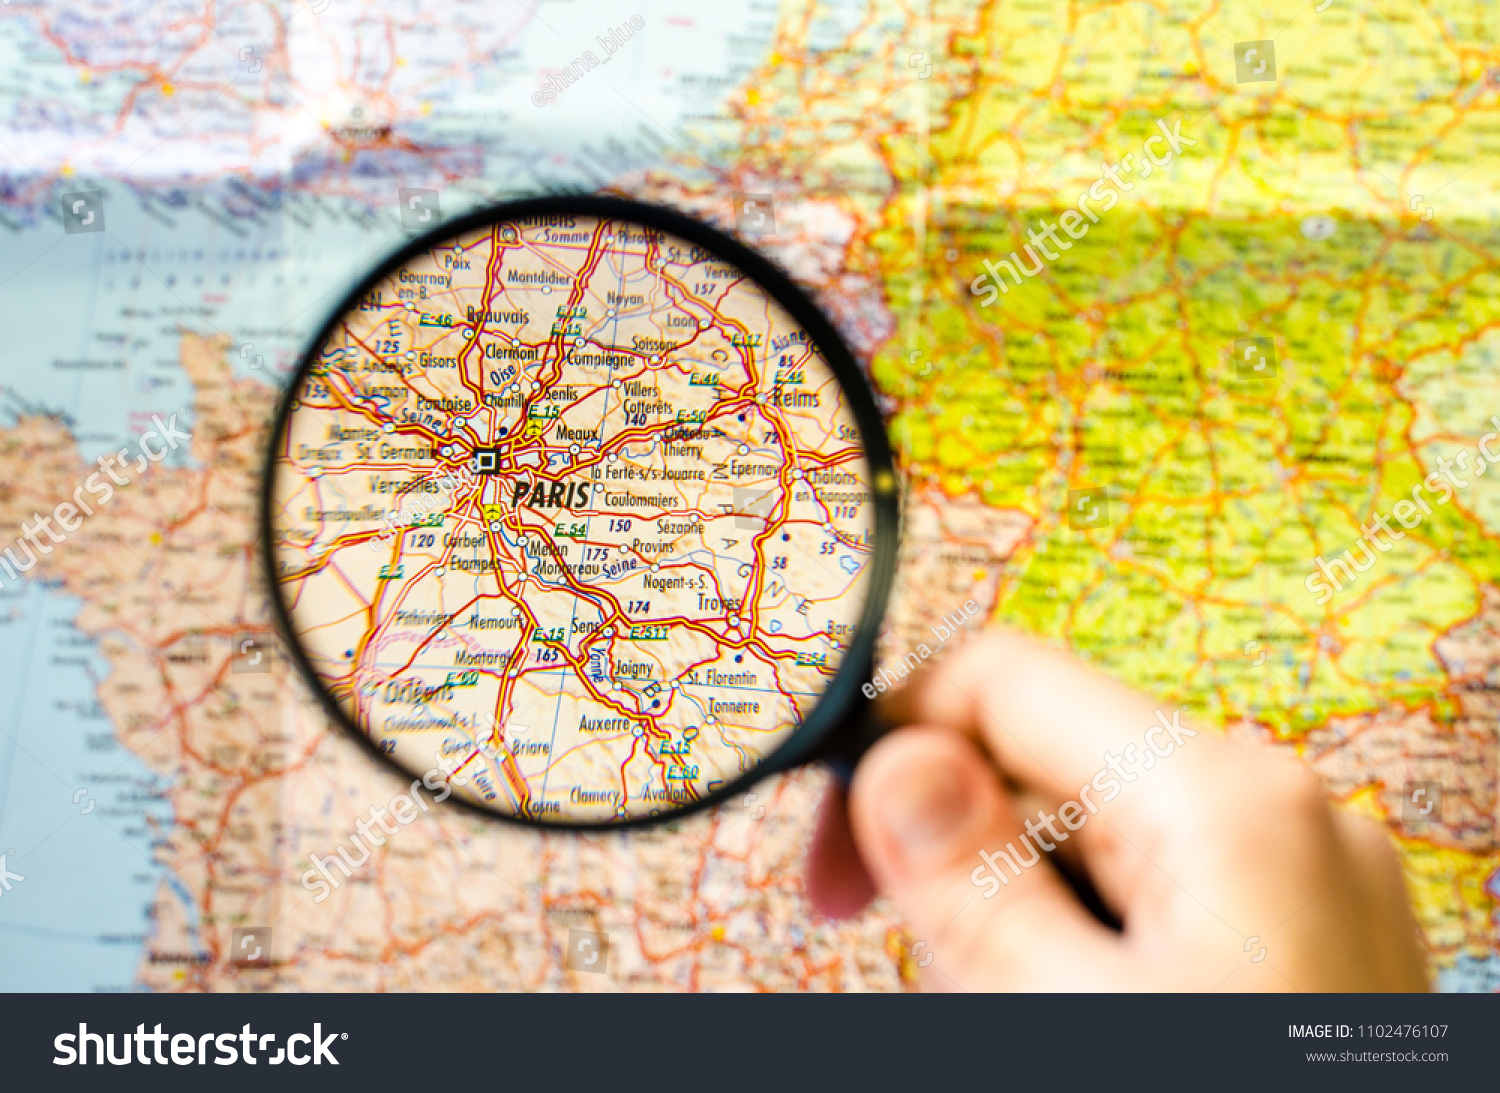 Paris On Map Of Europe.Paris On Map Europe Under Magnifying Stock Photo Edit Now